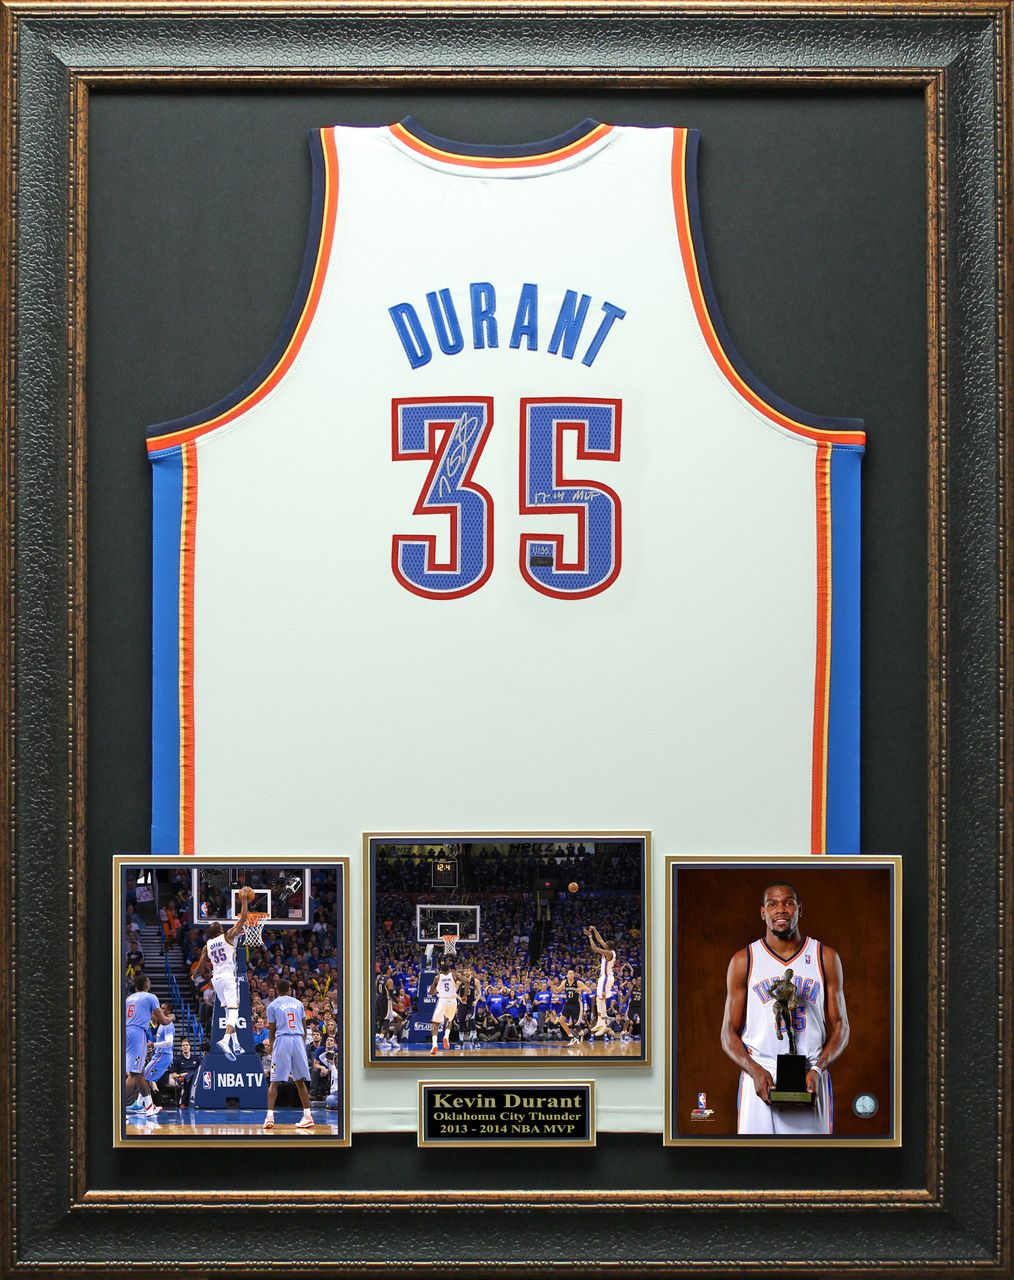 Pin by SignatureRoyale.com on Autographed Basketball Memorabilia ...